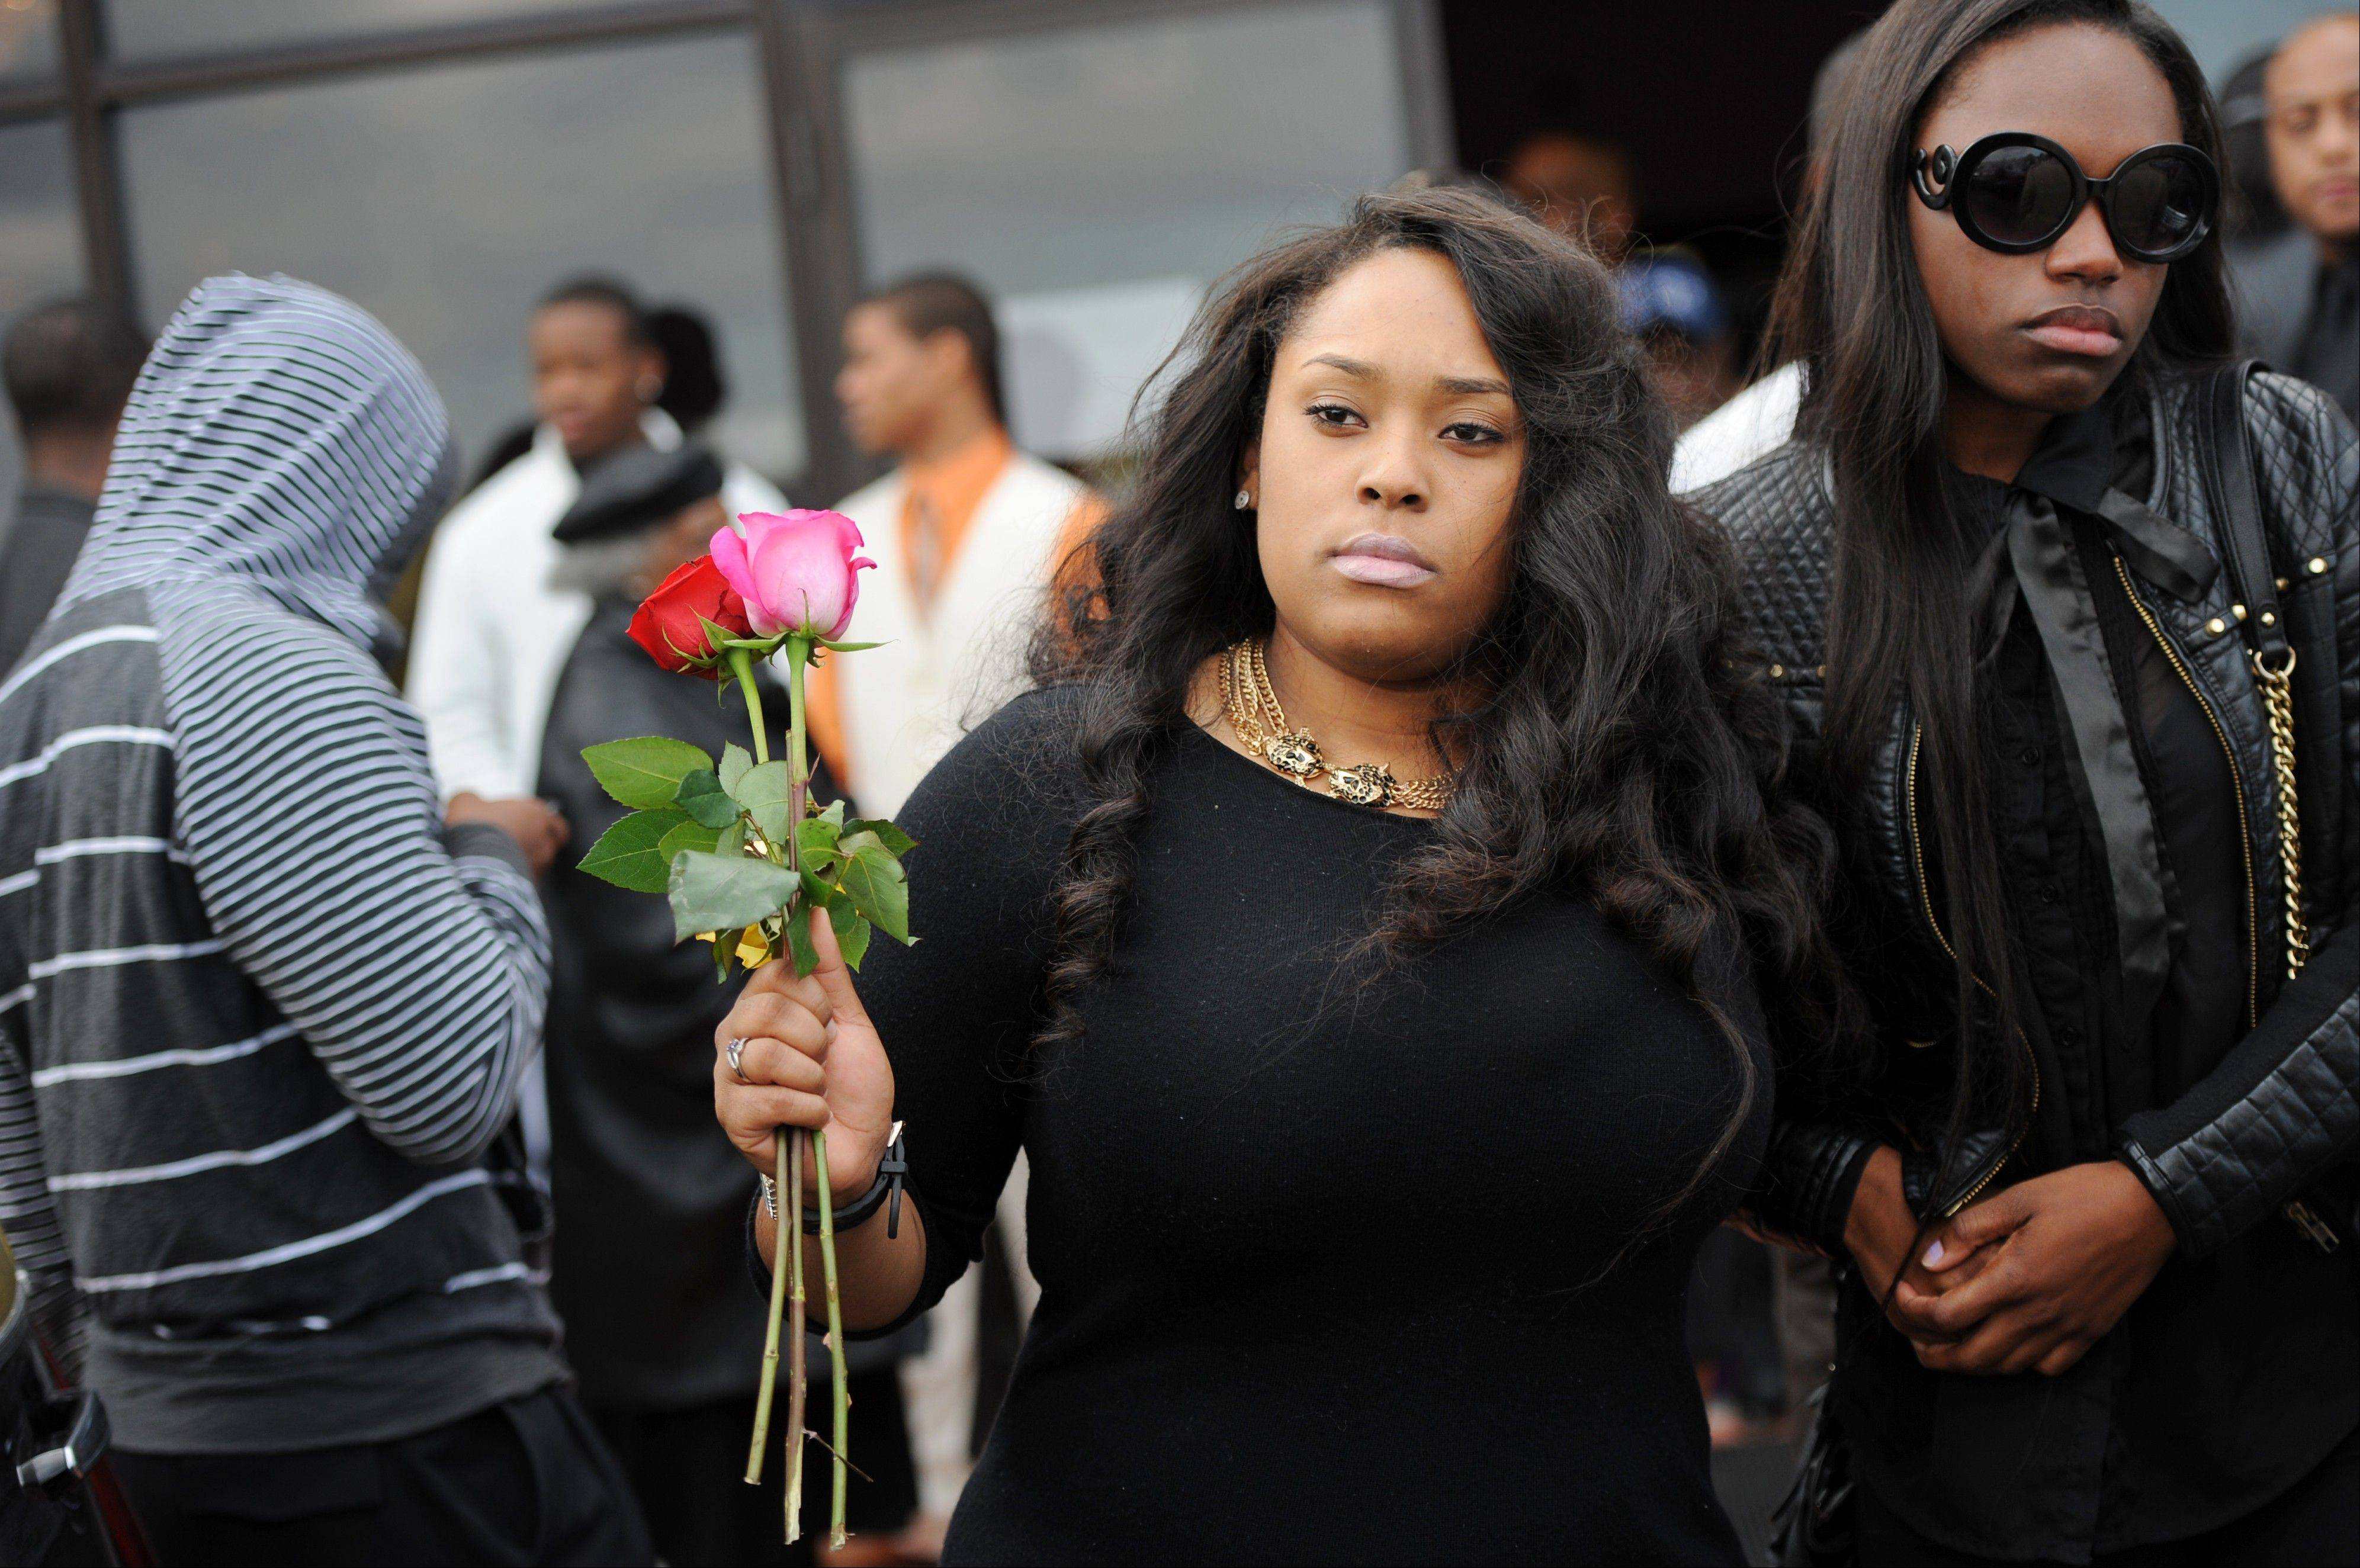 A mourner holds two roses as she walks out of the funeral for Eastern Michigan football player and Chicago native Demarius Reed at Holy Temple Cathedral in Harvey, Ill., on Saturday, Oct. 26, 2013. Reed was repeatedly shot Oct. 18 in what police say may have been a robbery. (AP Photo/AnnArbor.com, Melanie Maxwell) LOCAL TV OUT; LOCAL INTERNET OUT; ONLN OUT; IONLN OUT